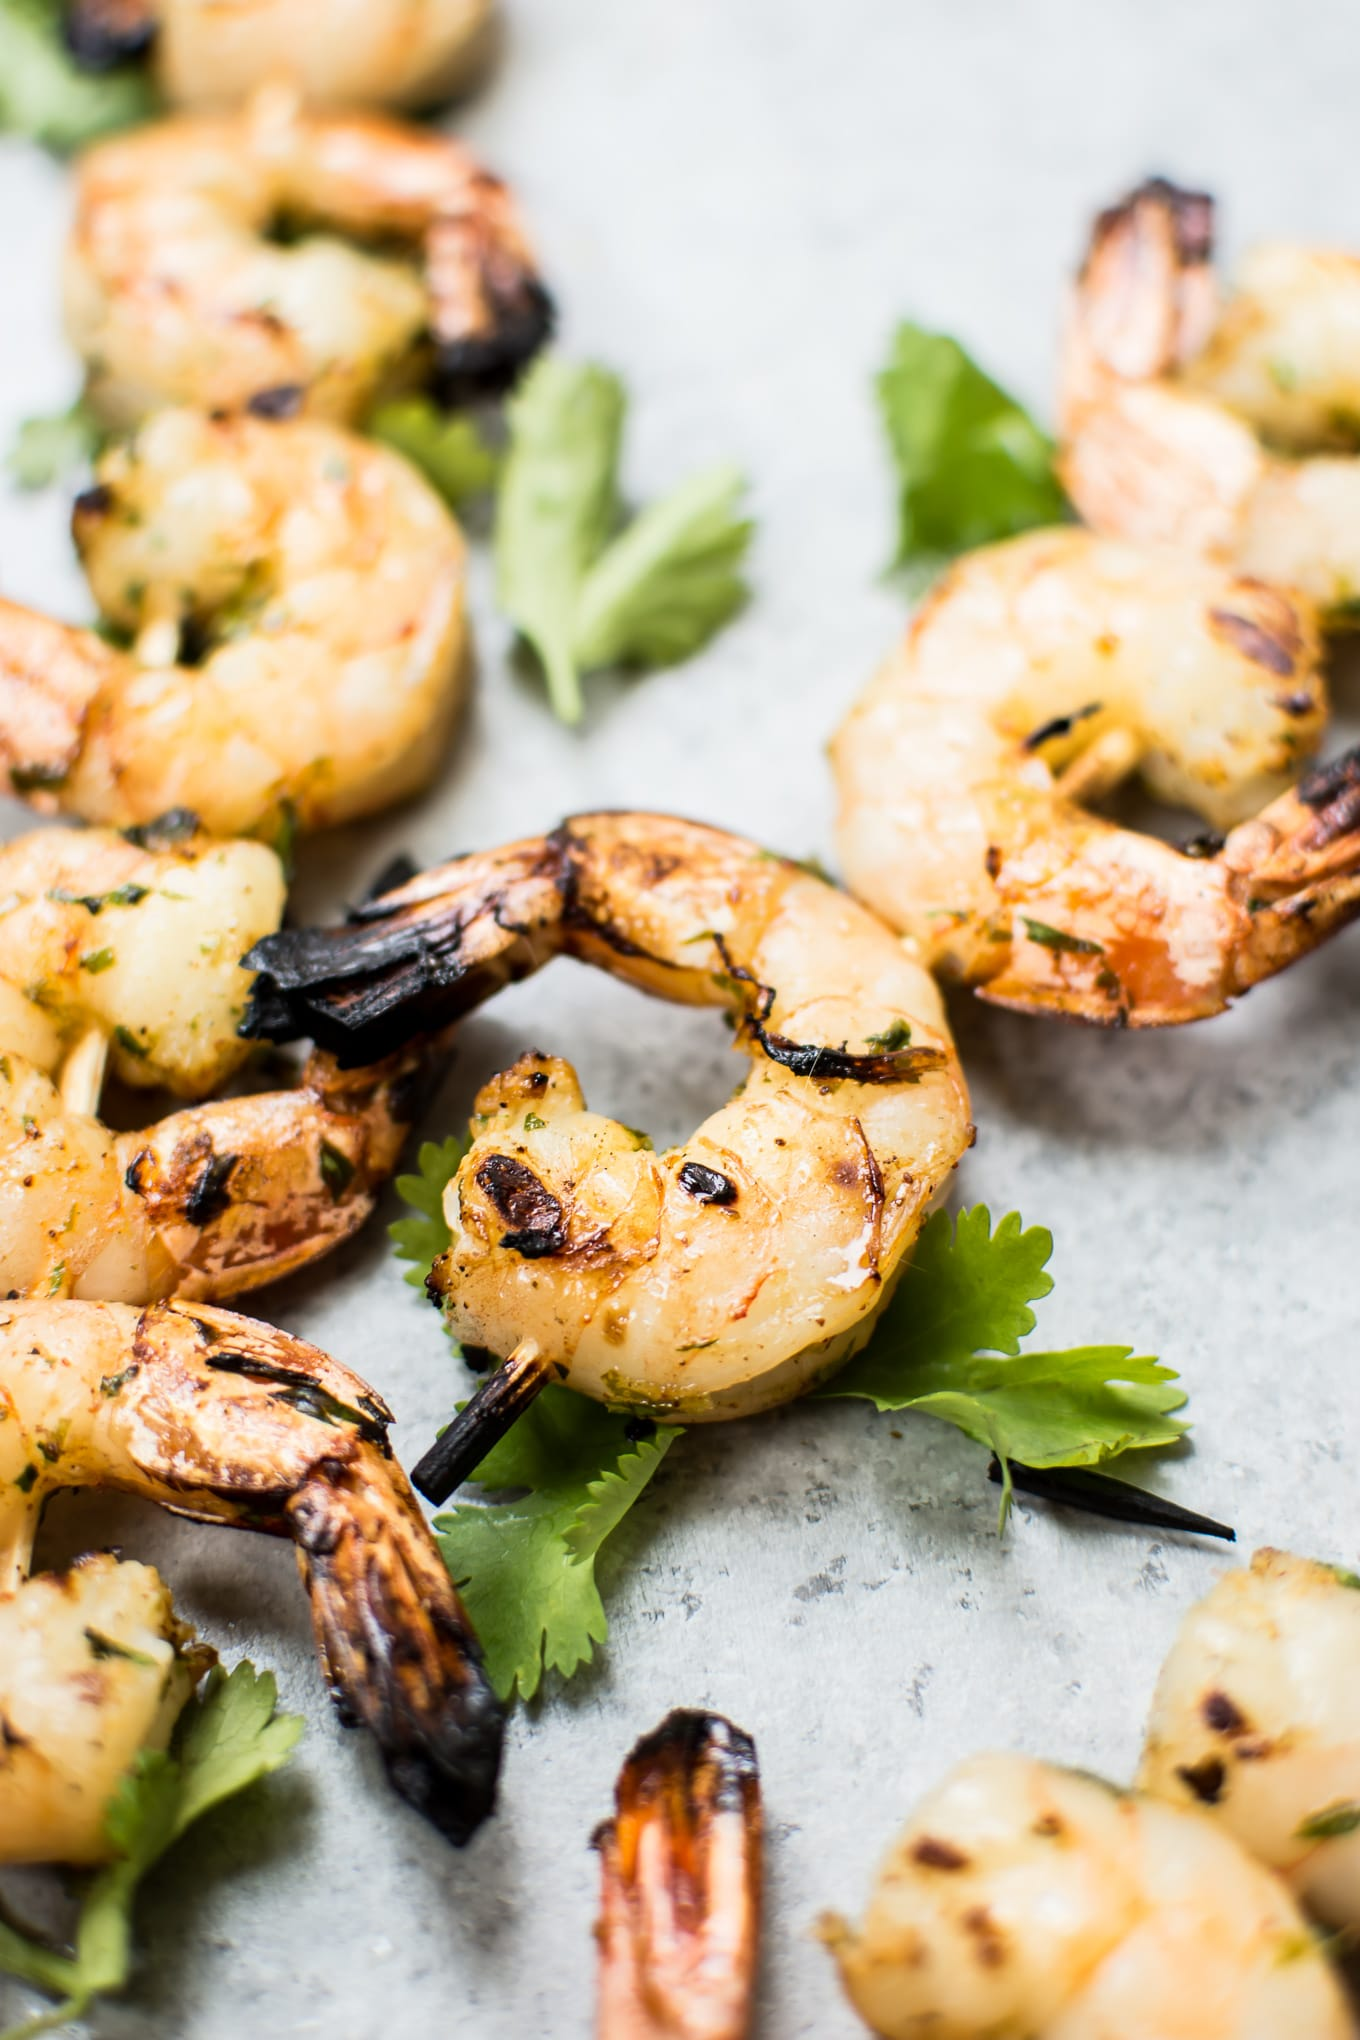 These flavorful grilled tequila lime shrimp are sure to be a hit at any BBQ or summer gathering!